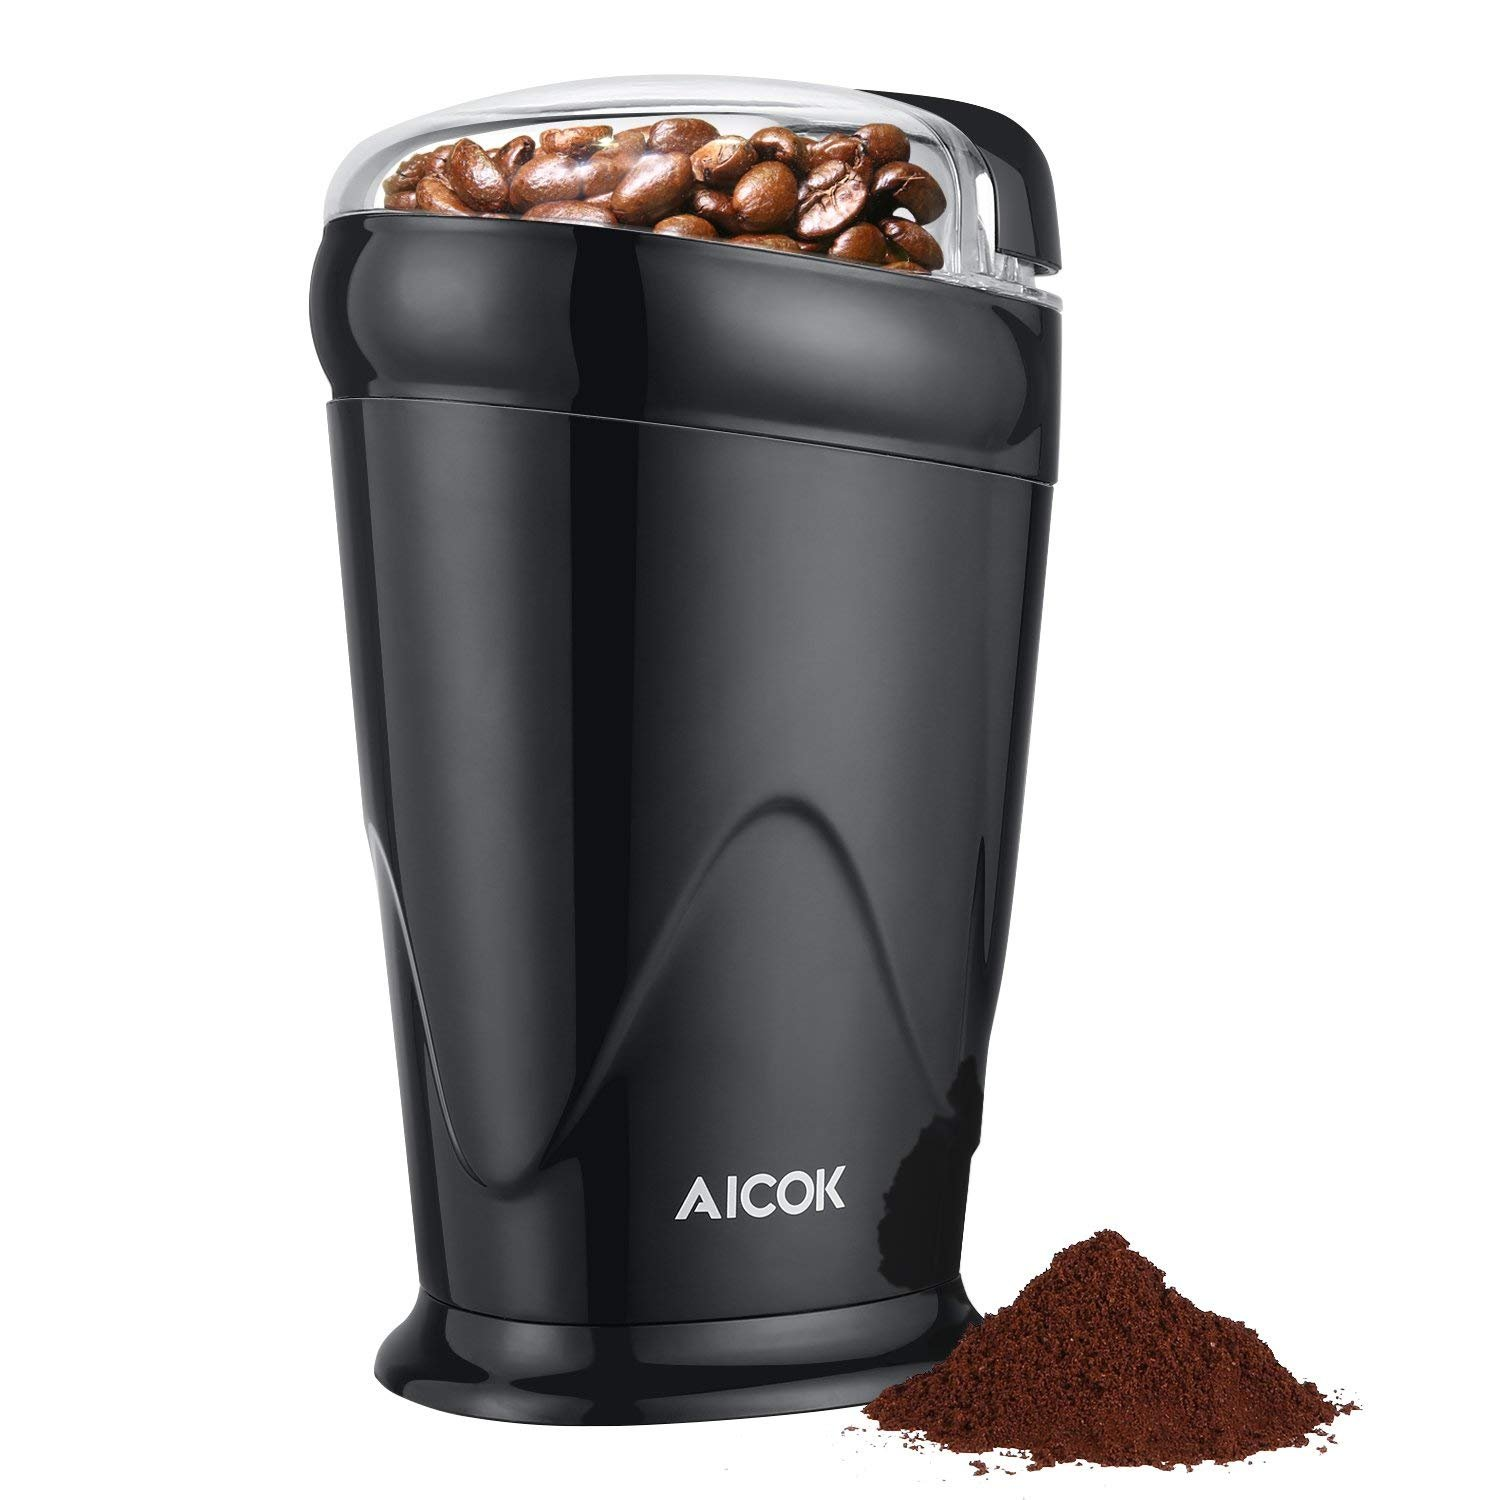 Electric Coffee Grinder, Electric Coffee Blade Grinder, Spice Grinder for Coffee Beans, Spices, Nuts and Grains, 65g, One-TouchControl, MaximizeCoffeeFlavor&Aroma Aicok